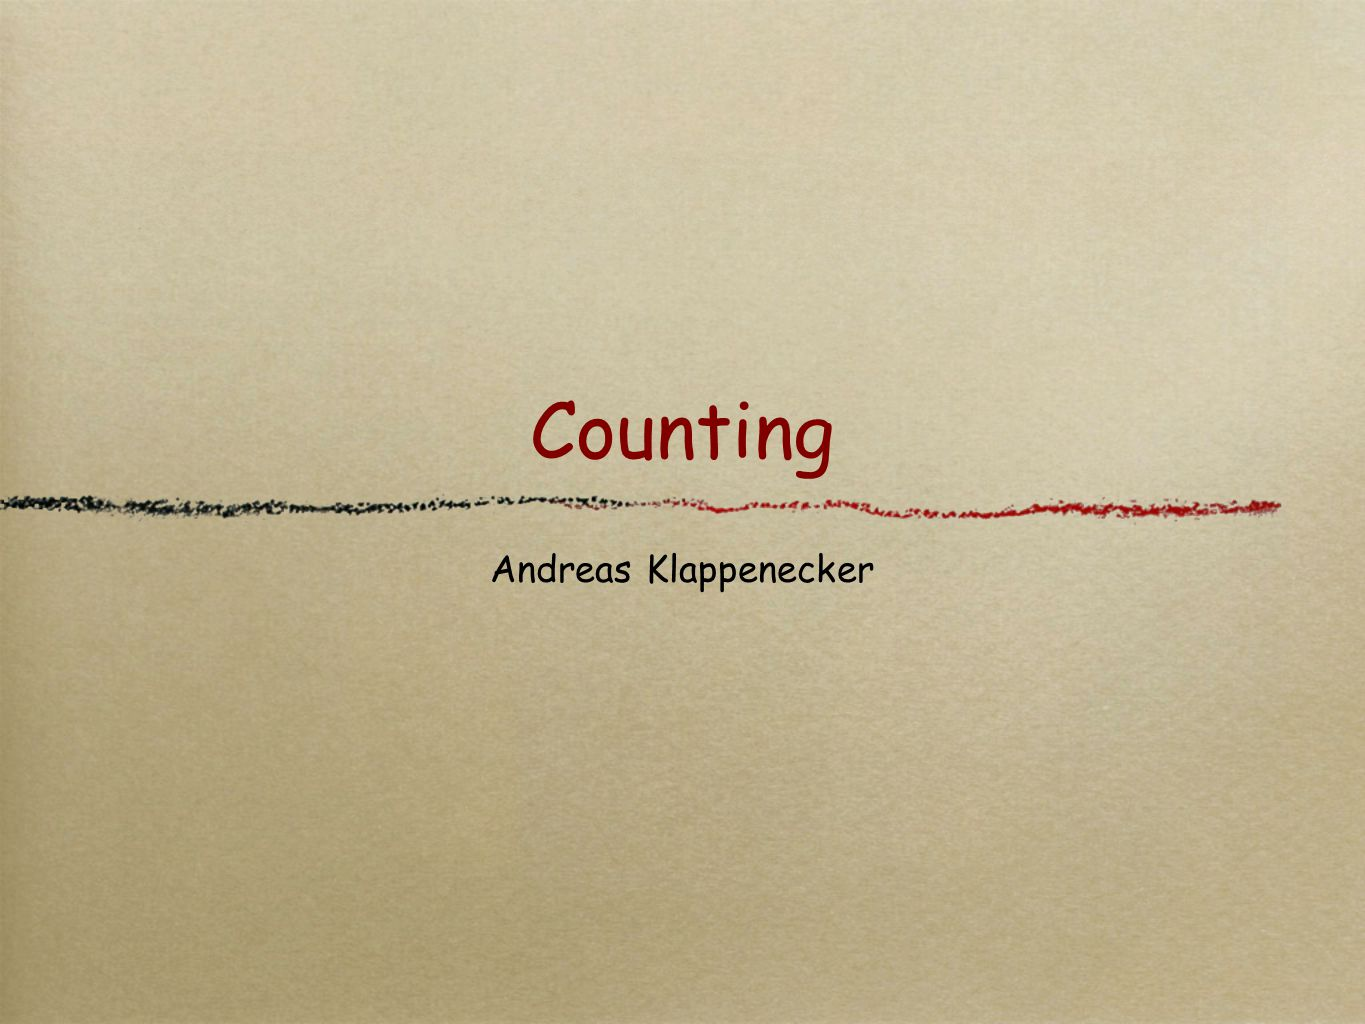 Counting Andreas Klappenecker